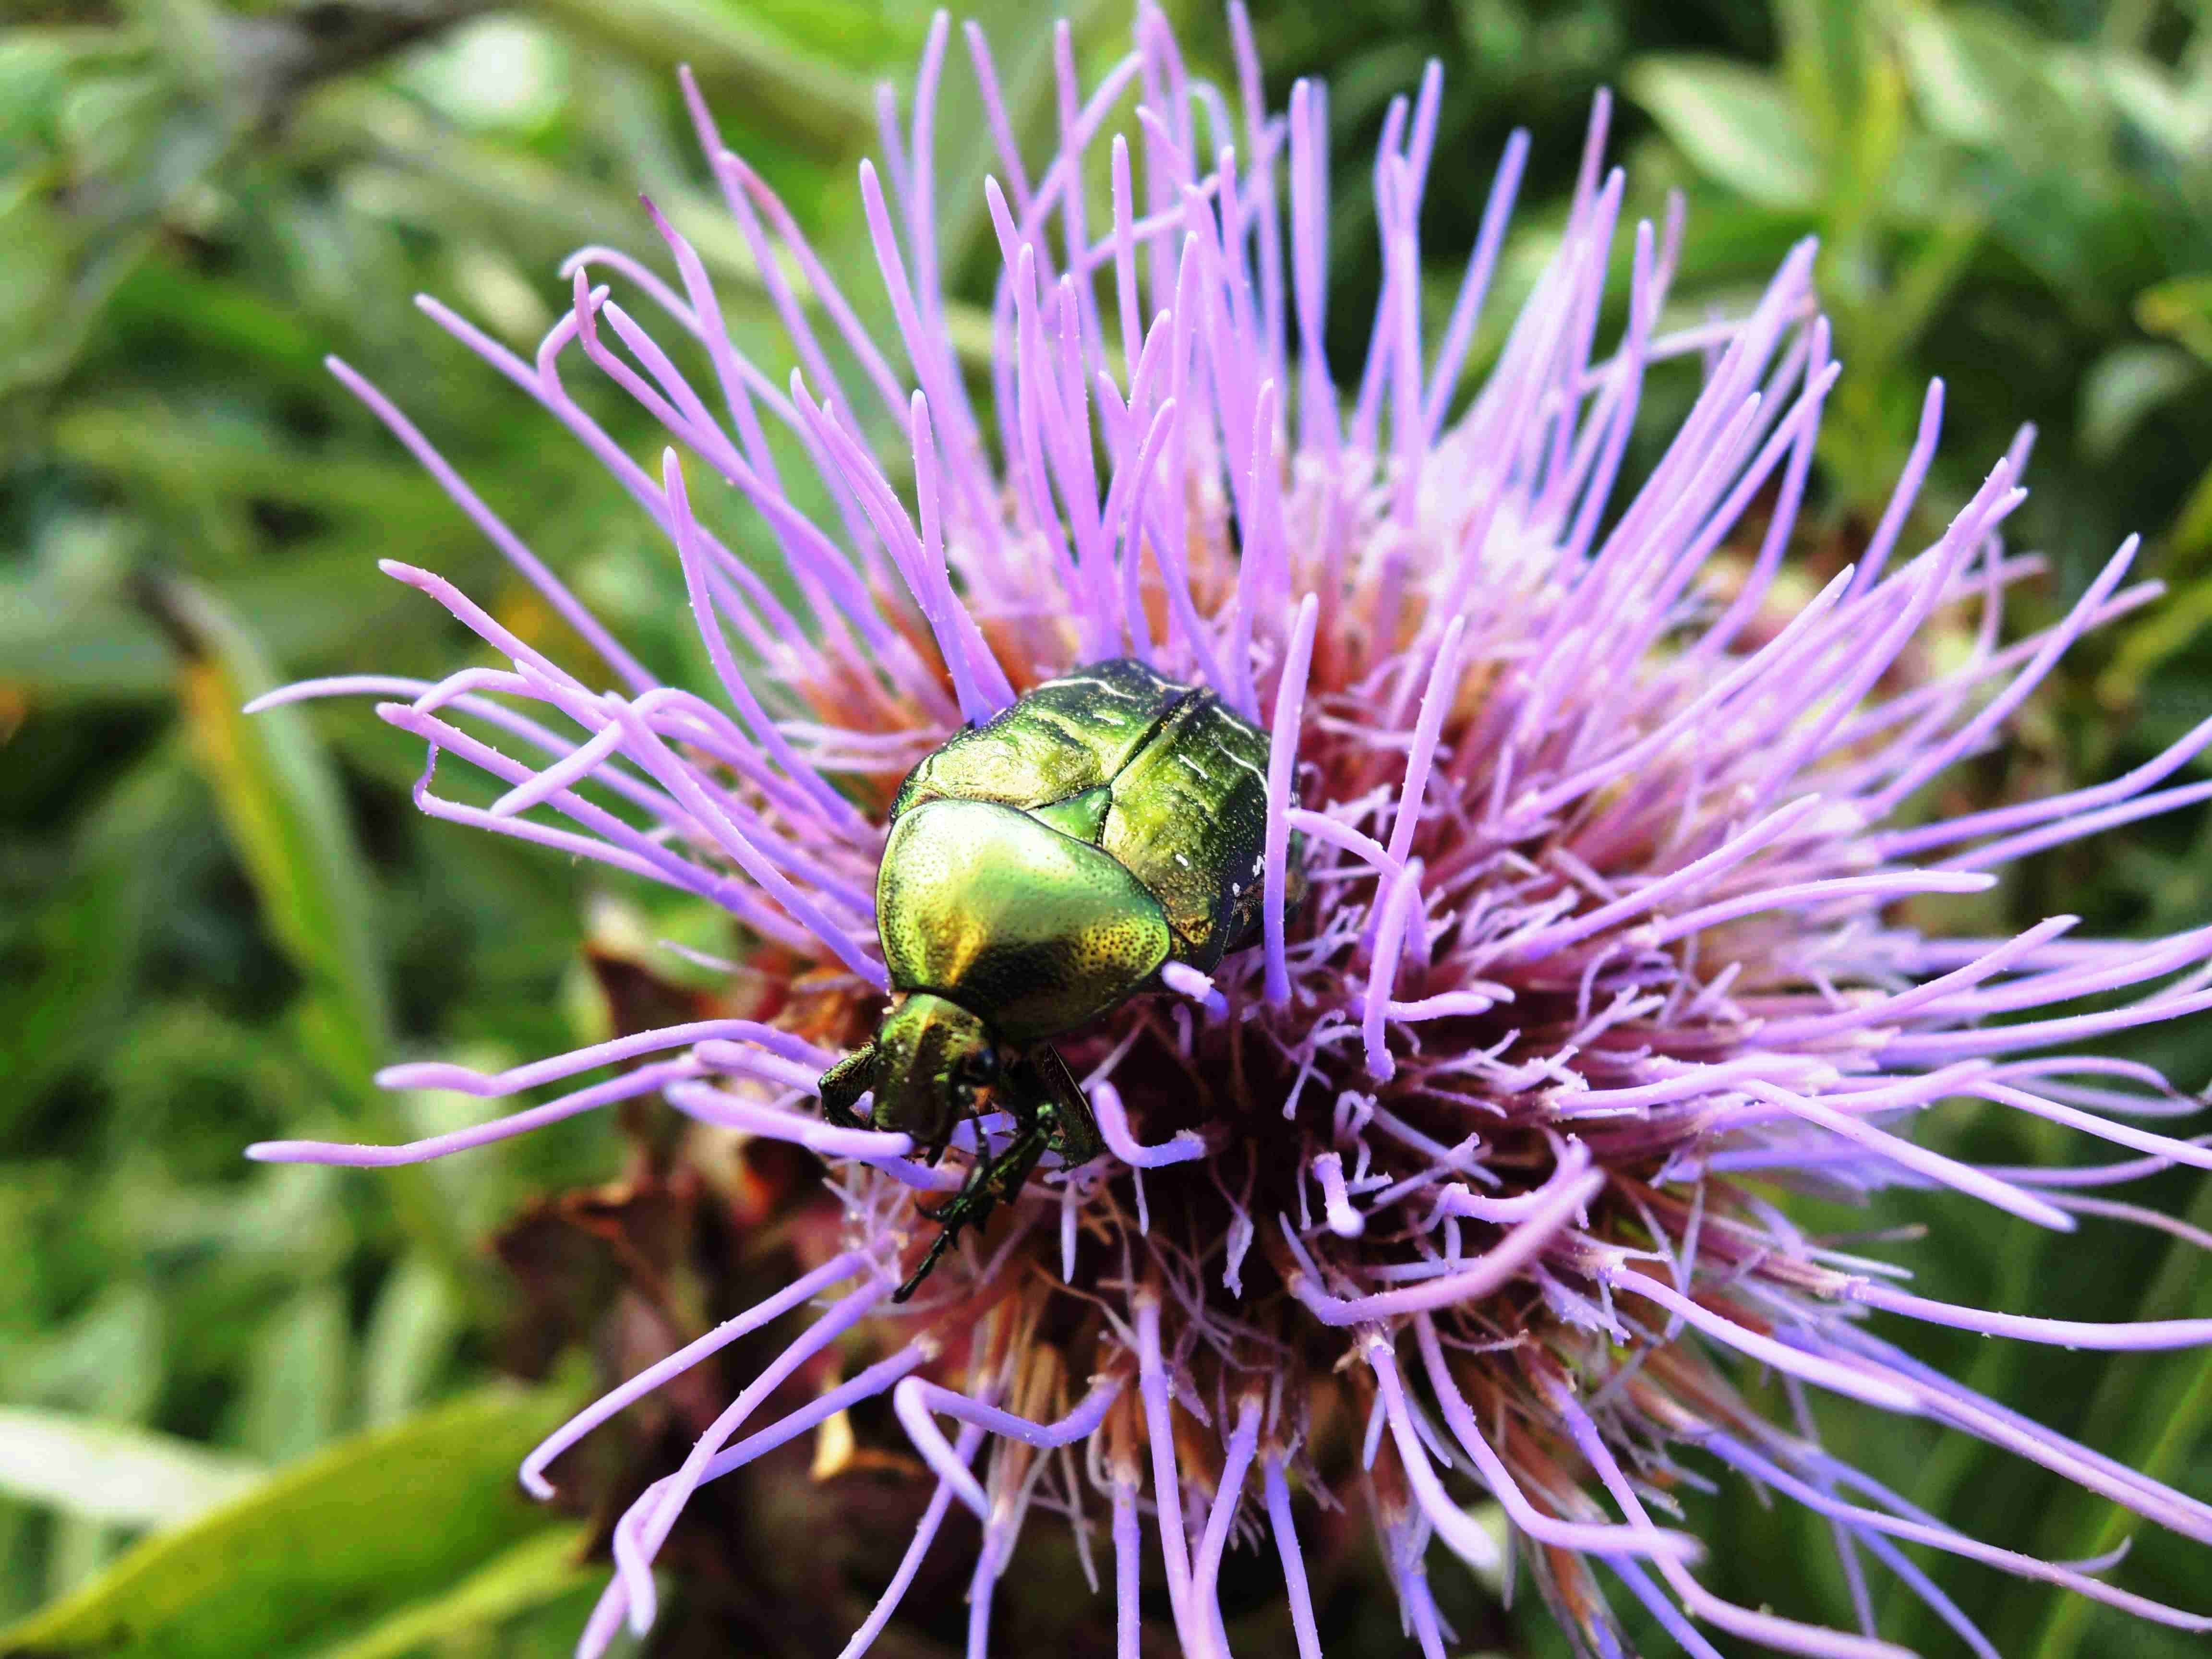 Scolymus-Cardunculus-Asteracees